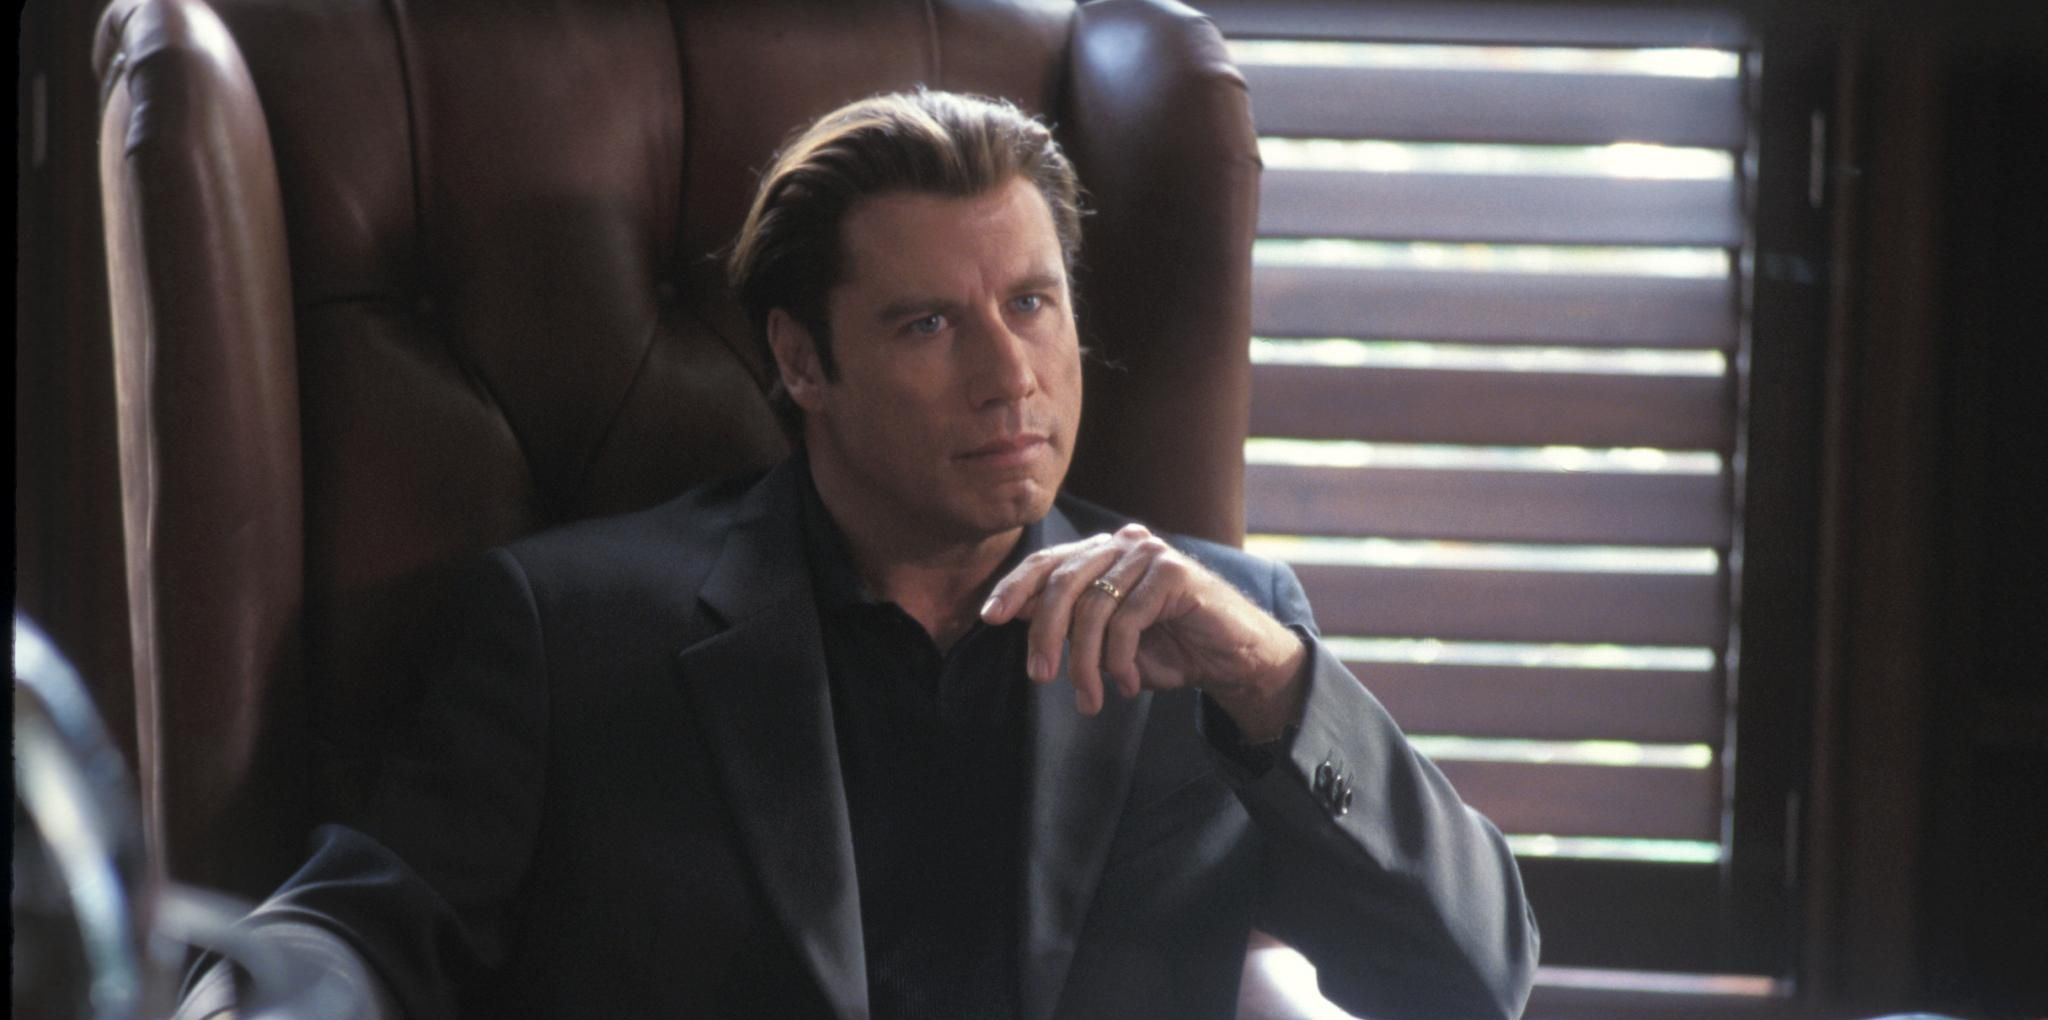 Punisher: John Travolta Explains Why His Villainous Role Was 'Fun to Play'